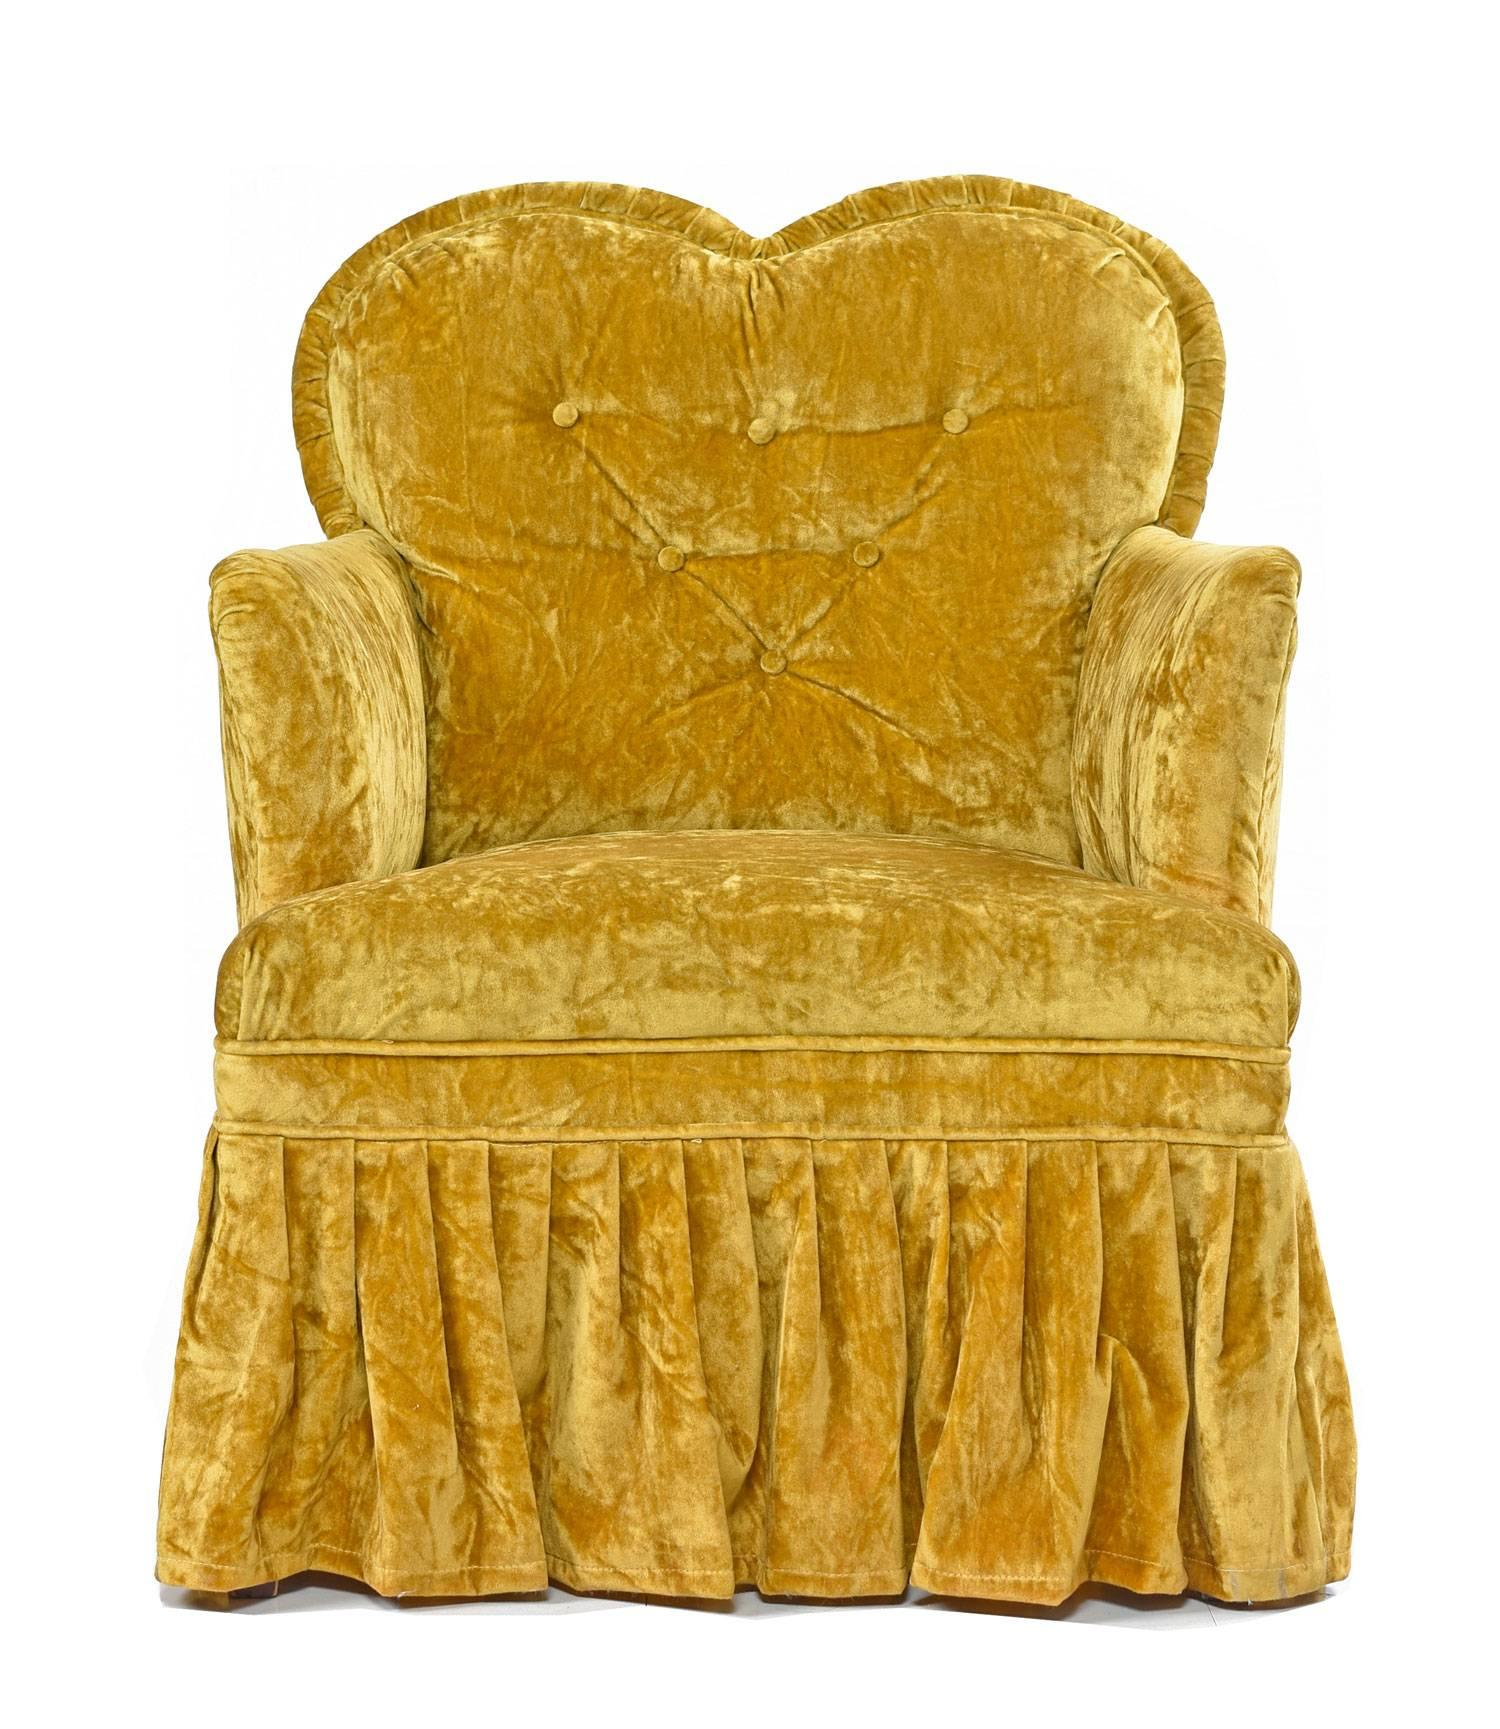 yellow bedroom chair eames amazon crushed velvet petit heart shaped hollywood regency chartreuse chairs for sale at 1stdibs